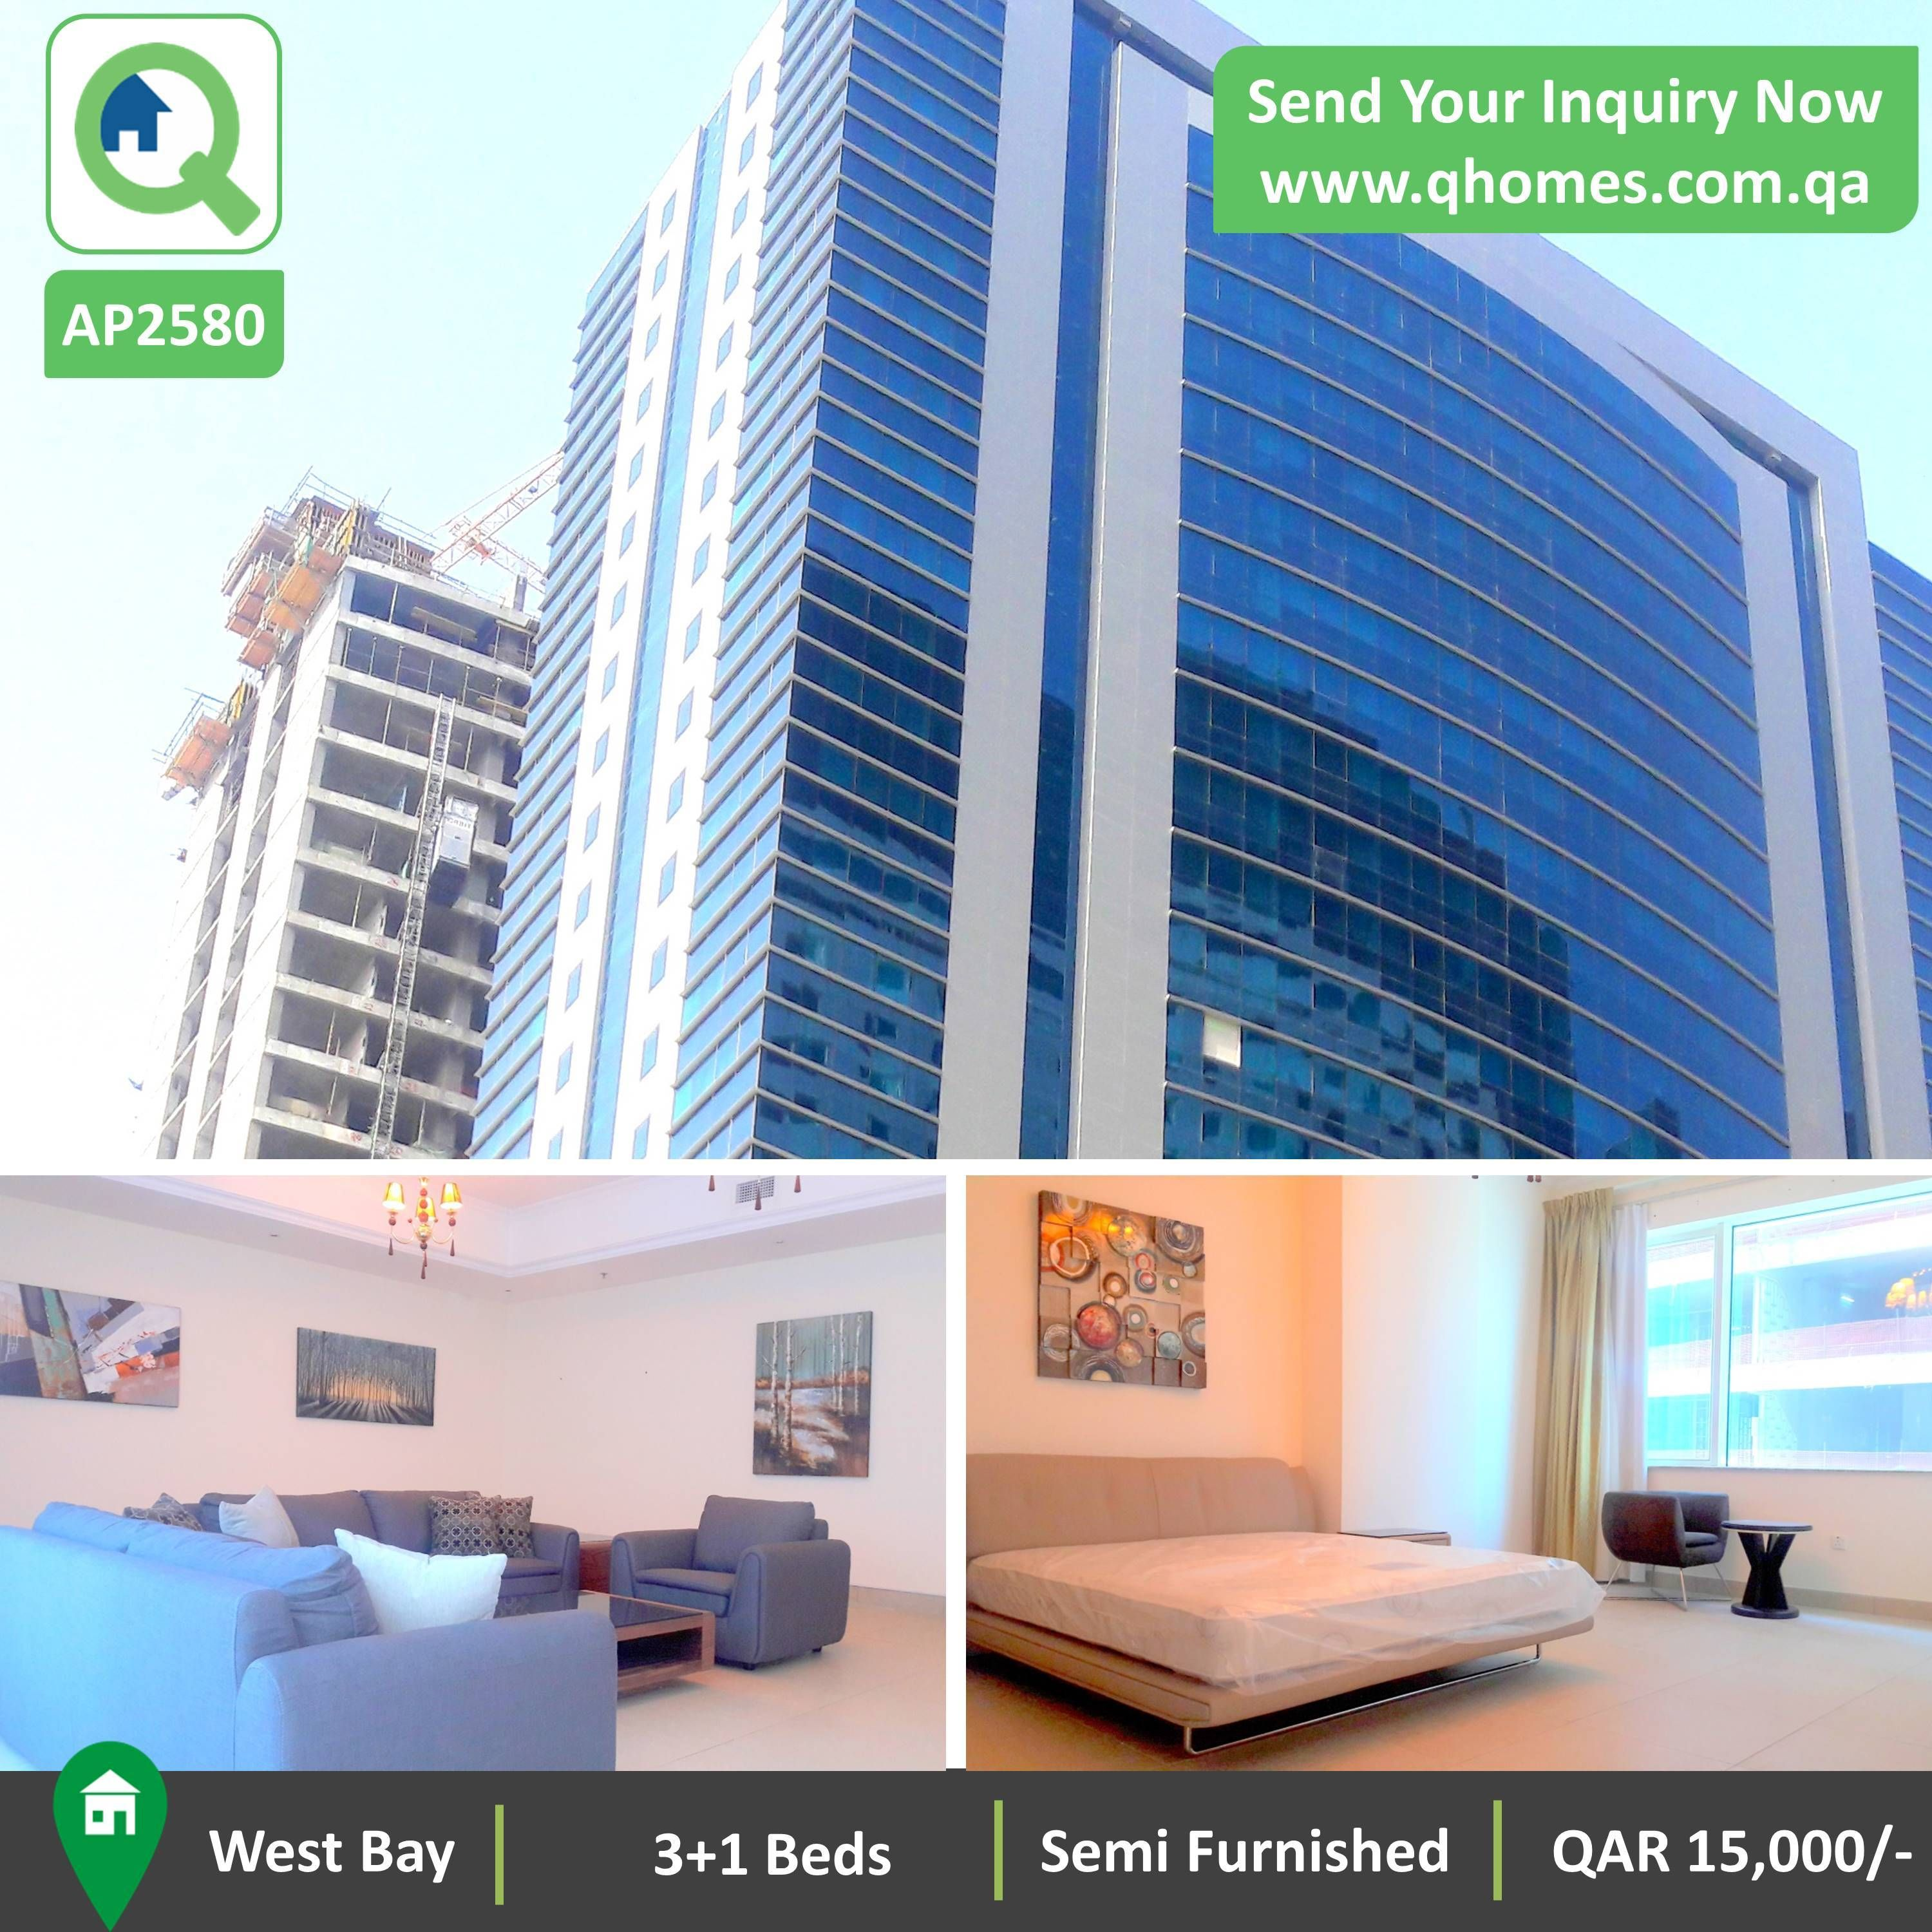 1 Bedroom Apartments For Rent Near Me 800: Apartment For Rent In Qatar: Luxurious Semi Furnished 3+1